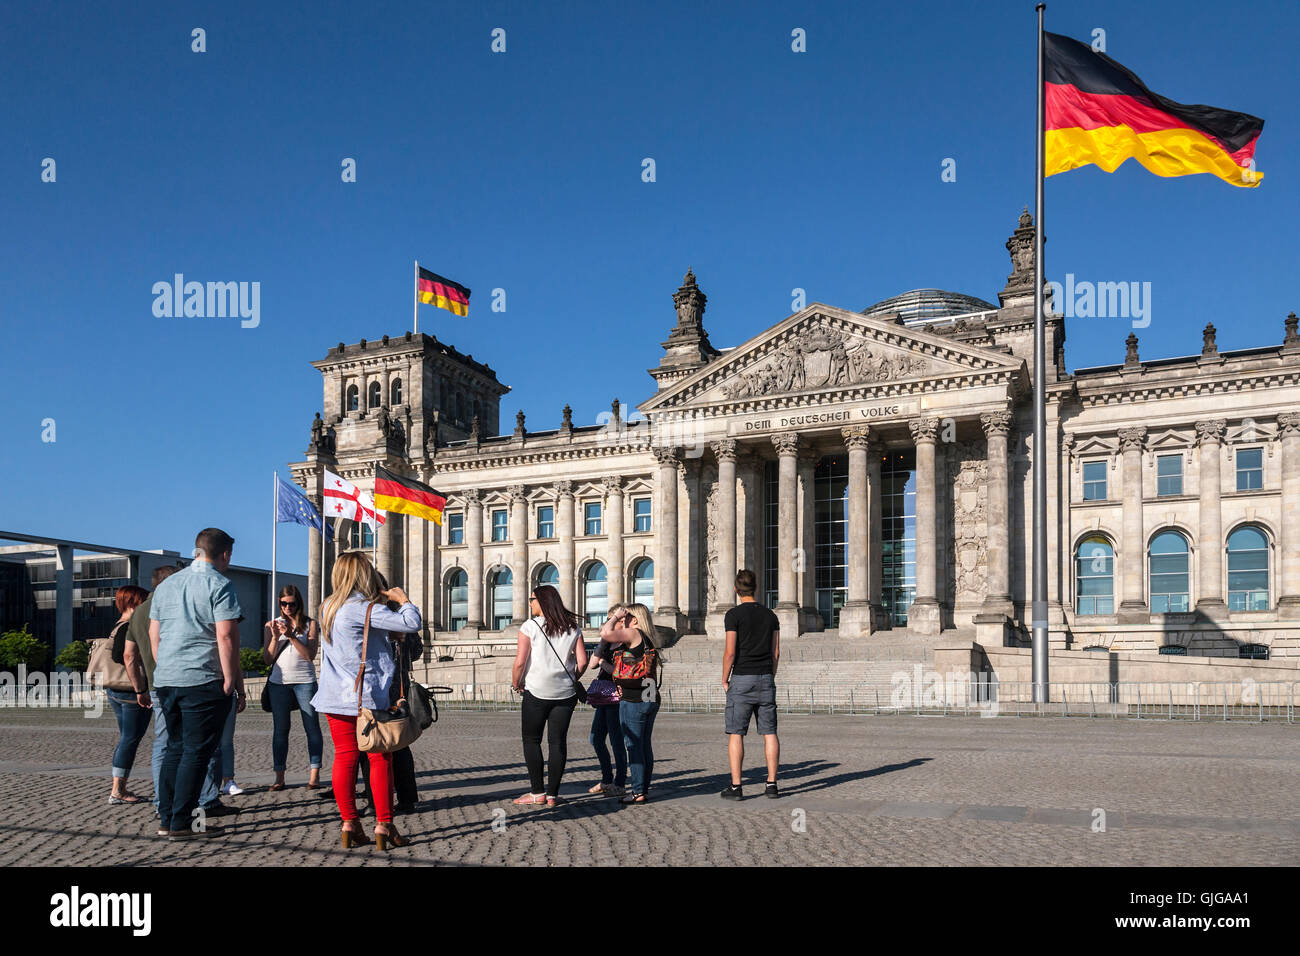 The Reichstag (Bundestag) German parliament building, Mitte, Berlin, Germany. - Stock Image